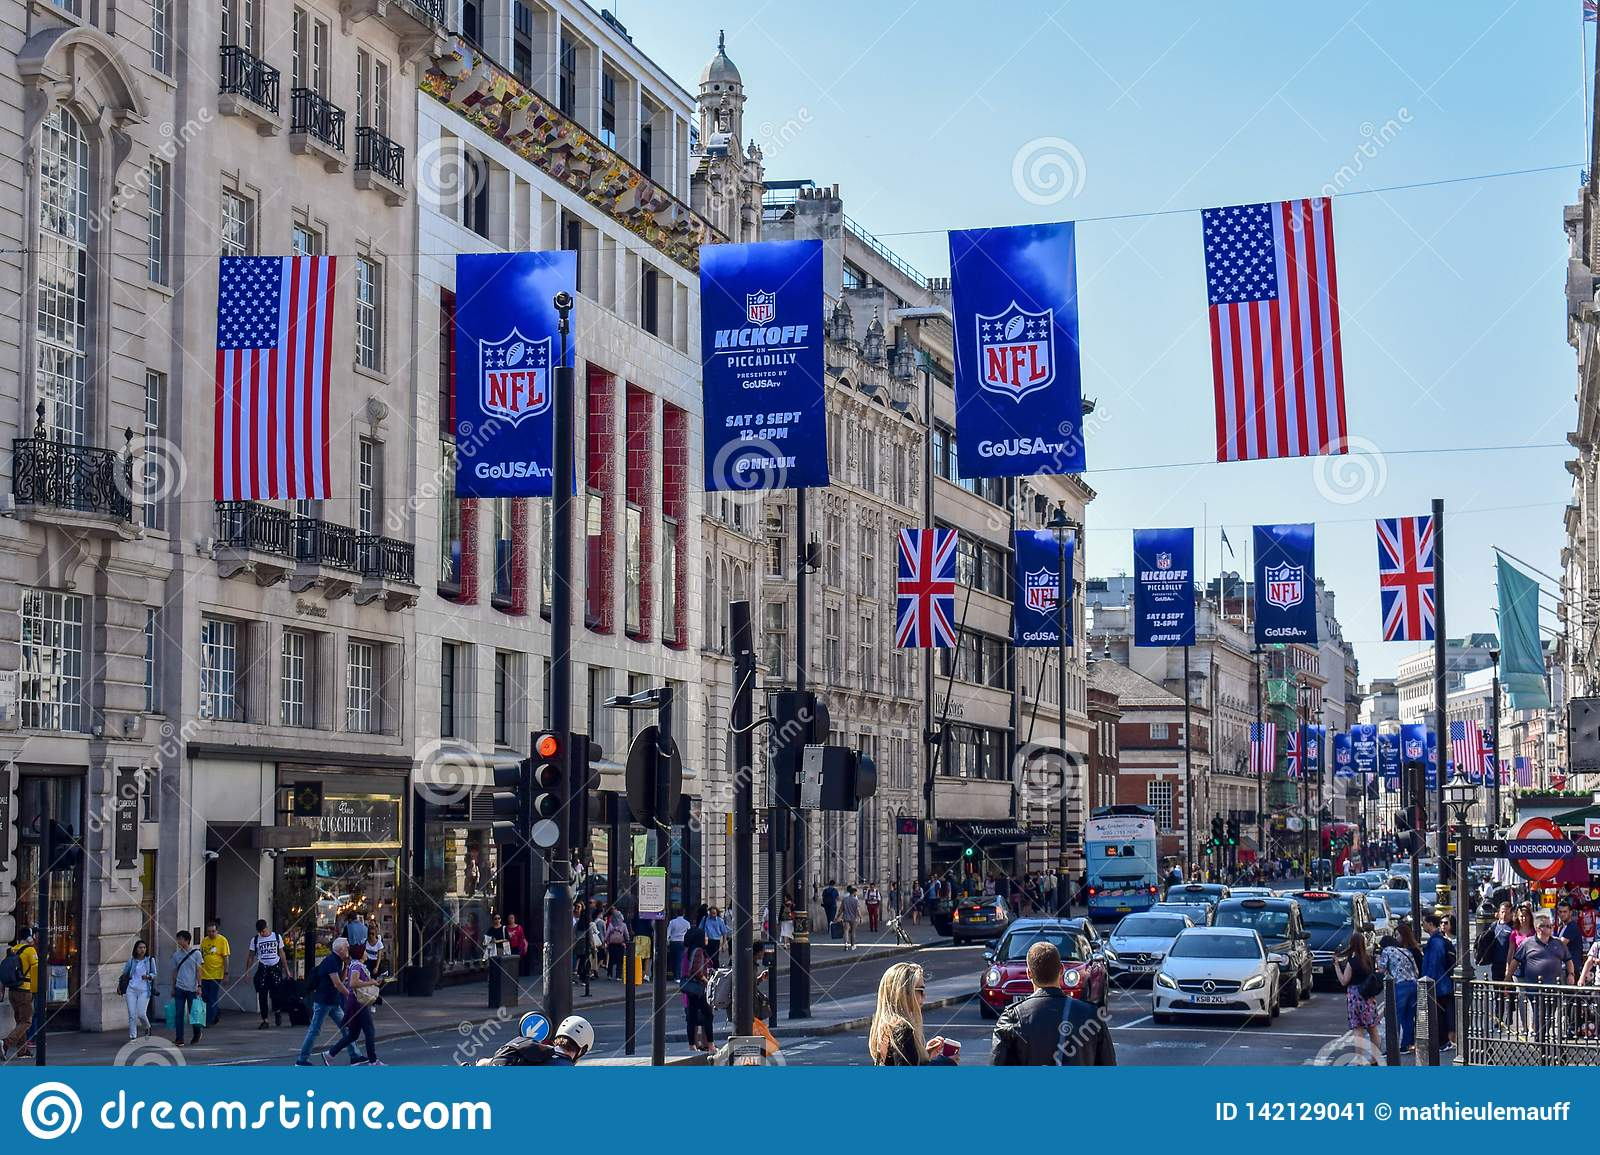 Busy London Street with American Football Banners and Flags